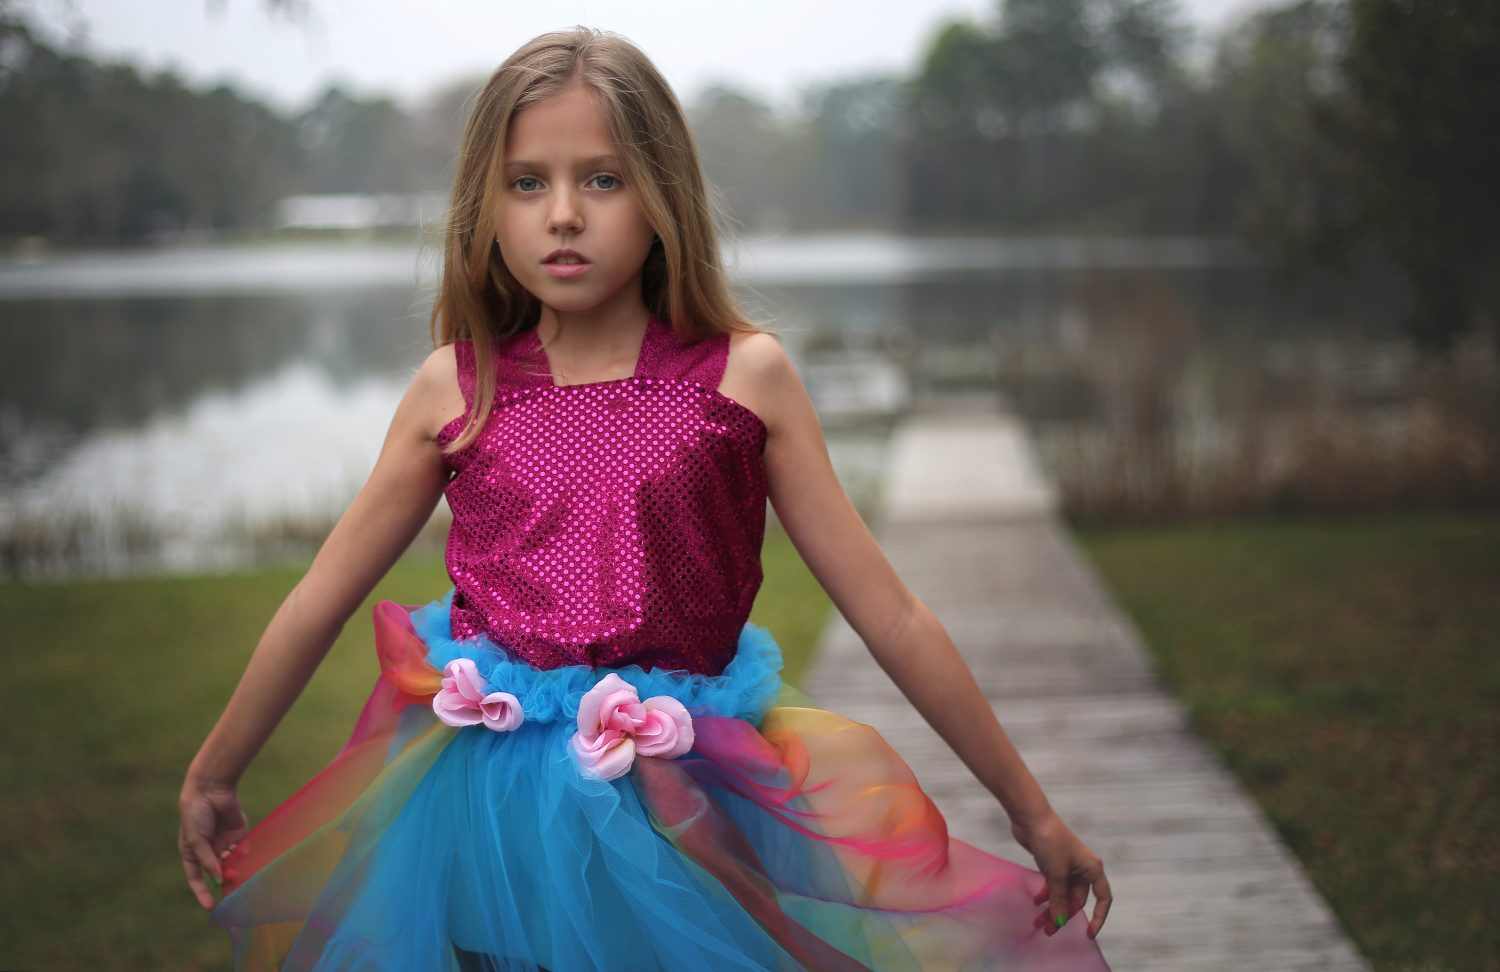 9 Year Old Designer To Debut Fashion Line For Charity